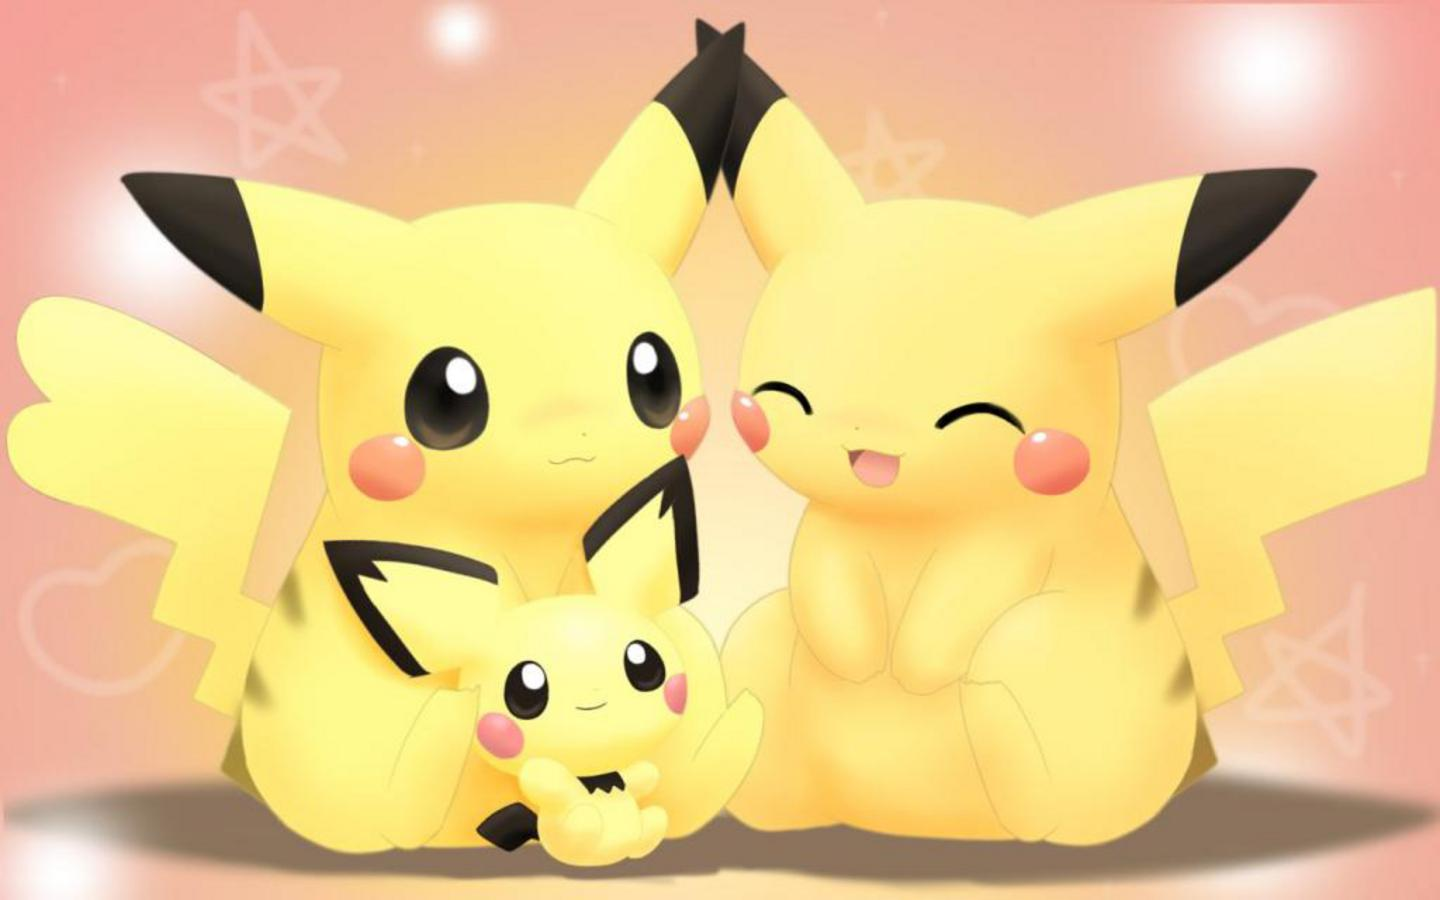 Pikachu Wallpaper Images amp Pictures   Becuo 1440x900